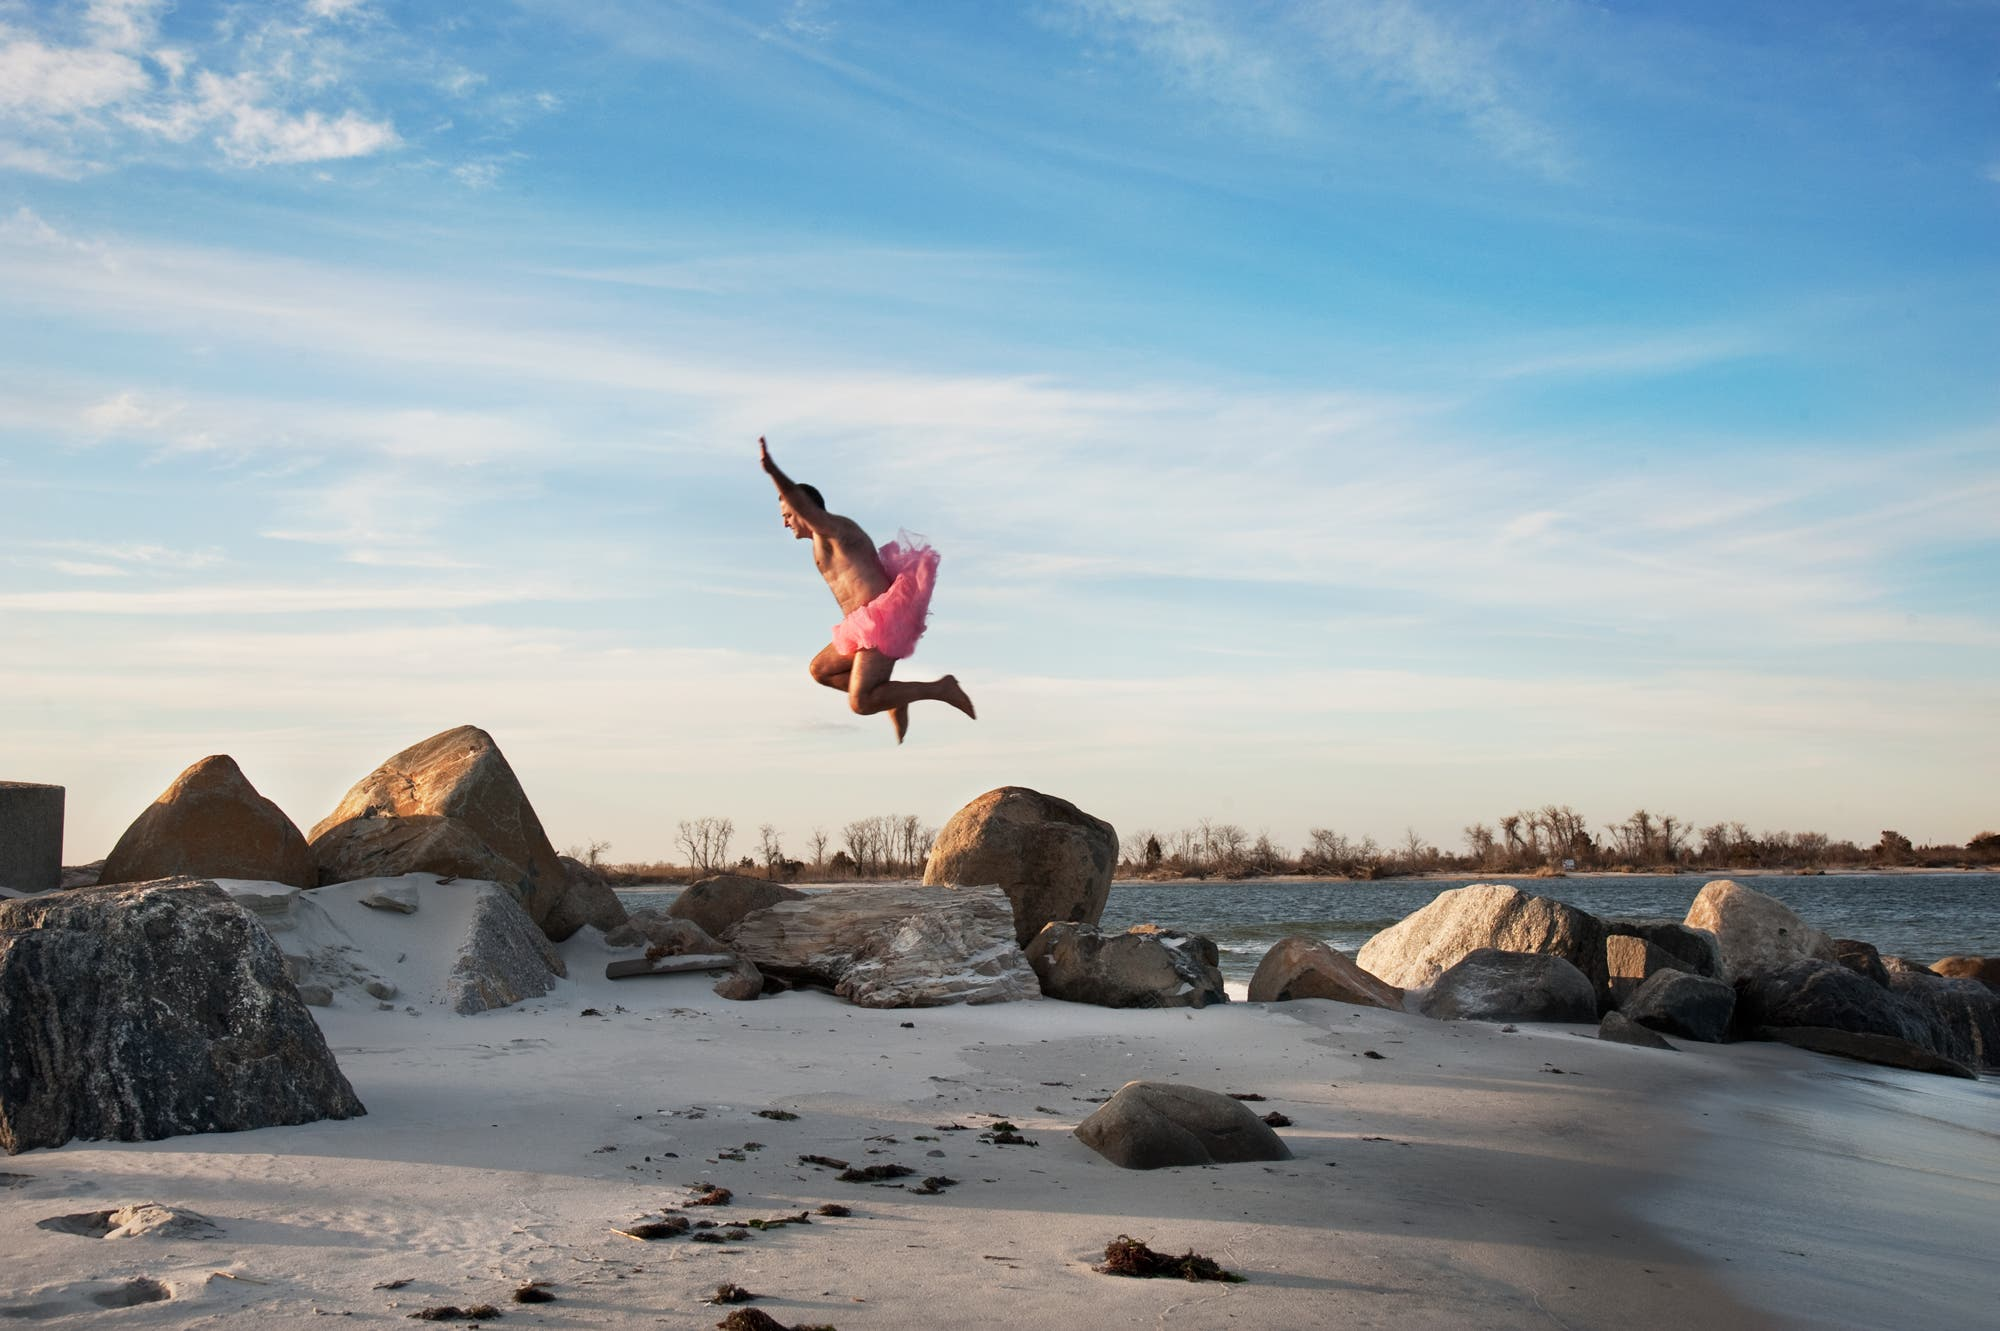 Photographer Bob Carey Publishes New Photos For the Tutu Project